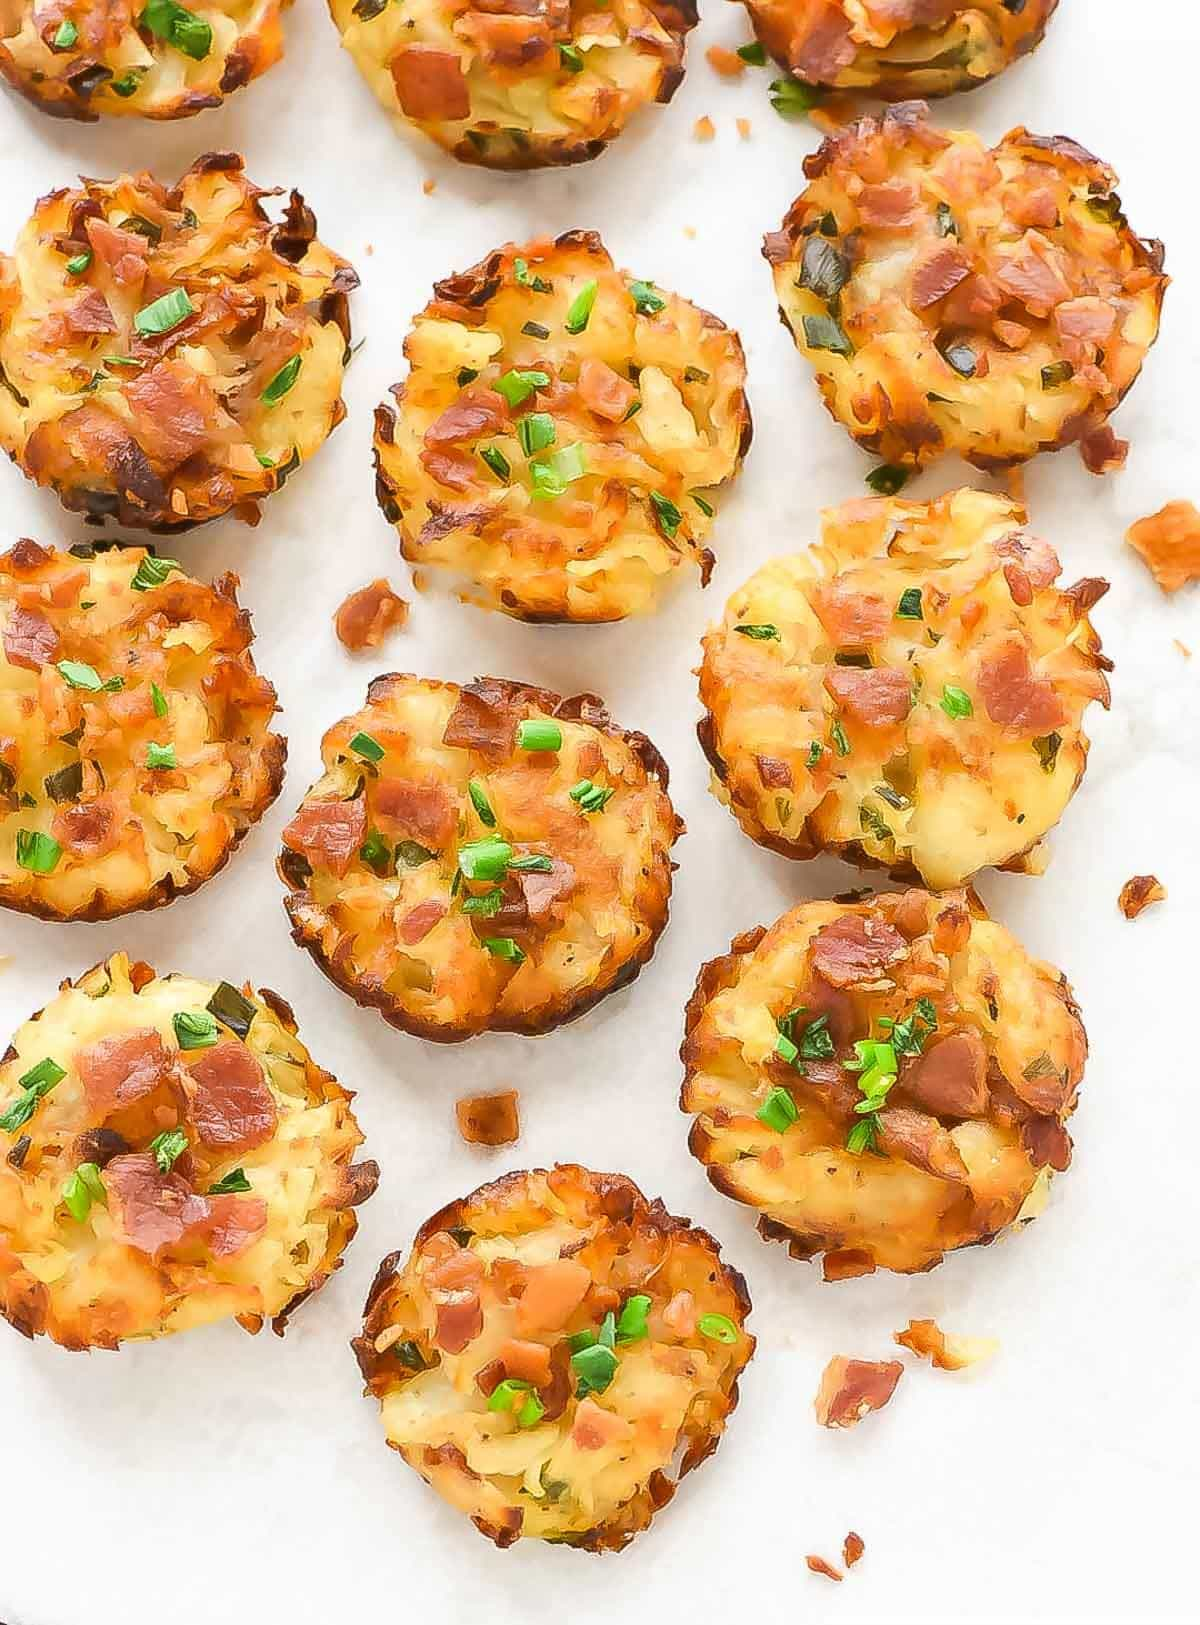 Baked, not fried homemade tater tots a mini muffin pan. GENIUS recipe with cheese and bacon. Say goodbye to those frozen bags of tater tots. This homemade version is so easy and way better than store-bought! @wellplated